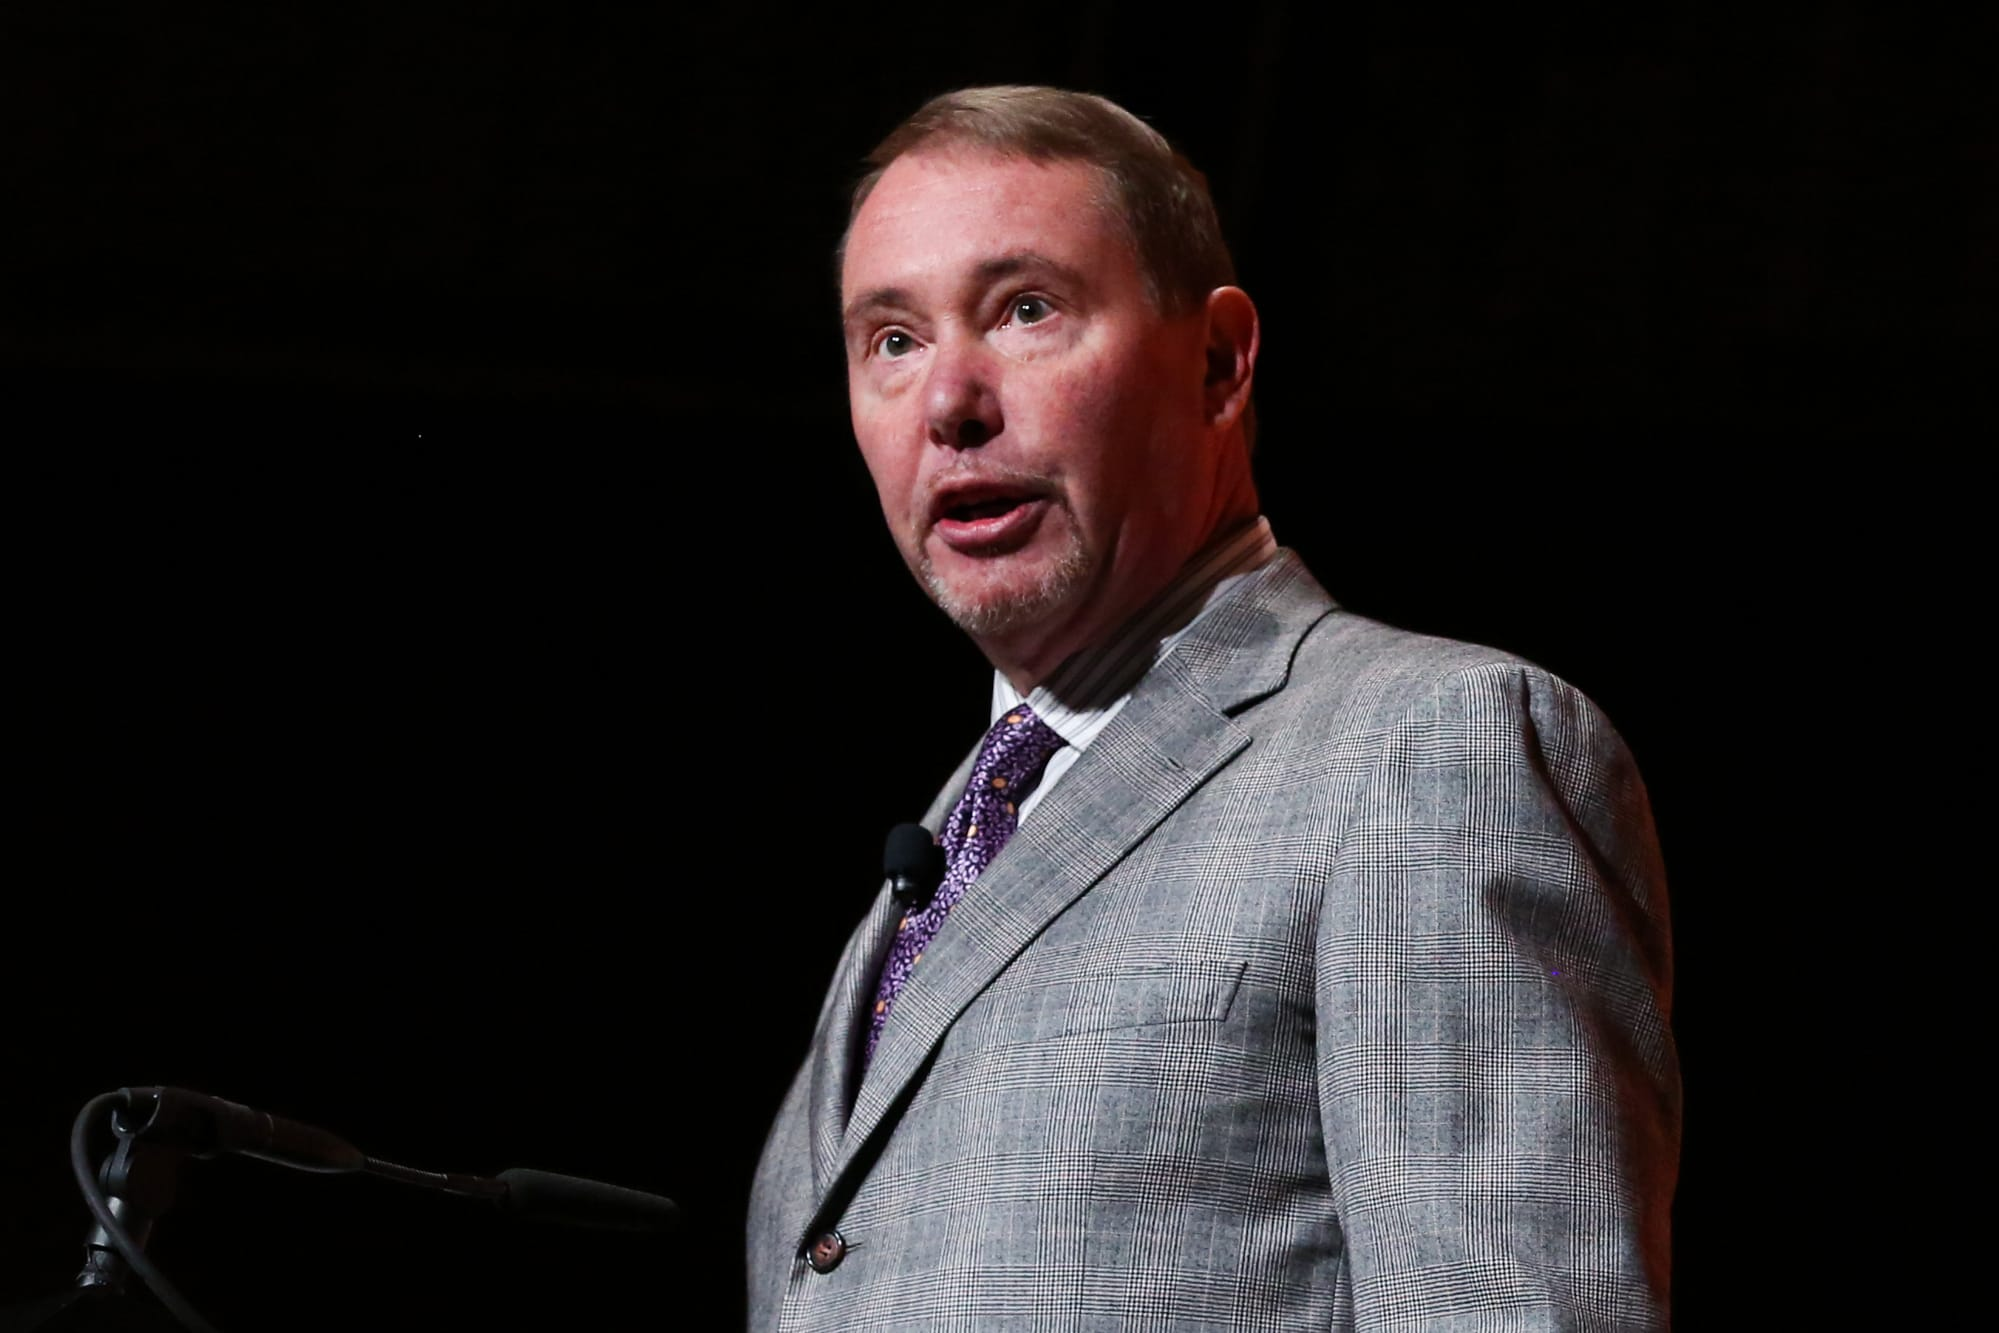 'Bond King' Jeffrey Gundlach says interest rates have bottomed for the year